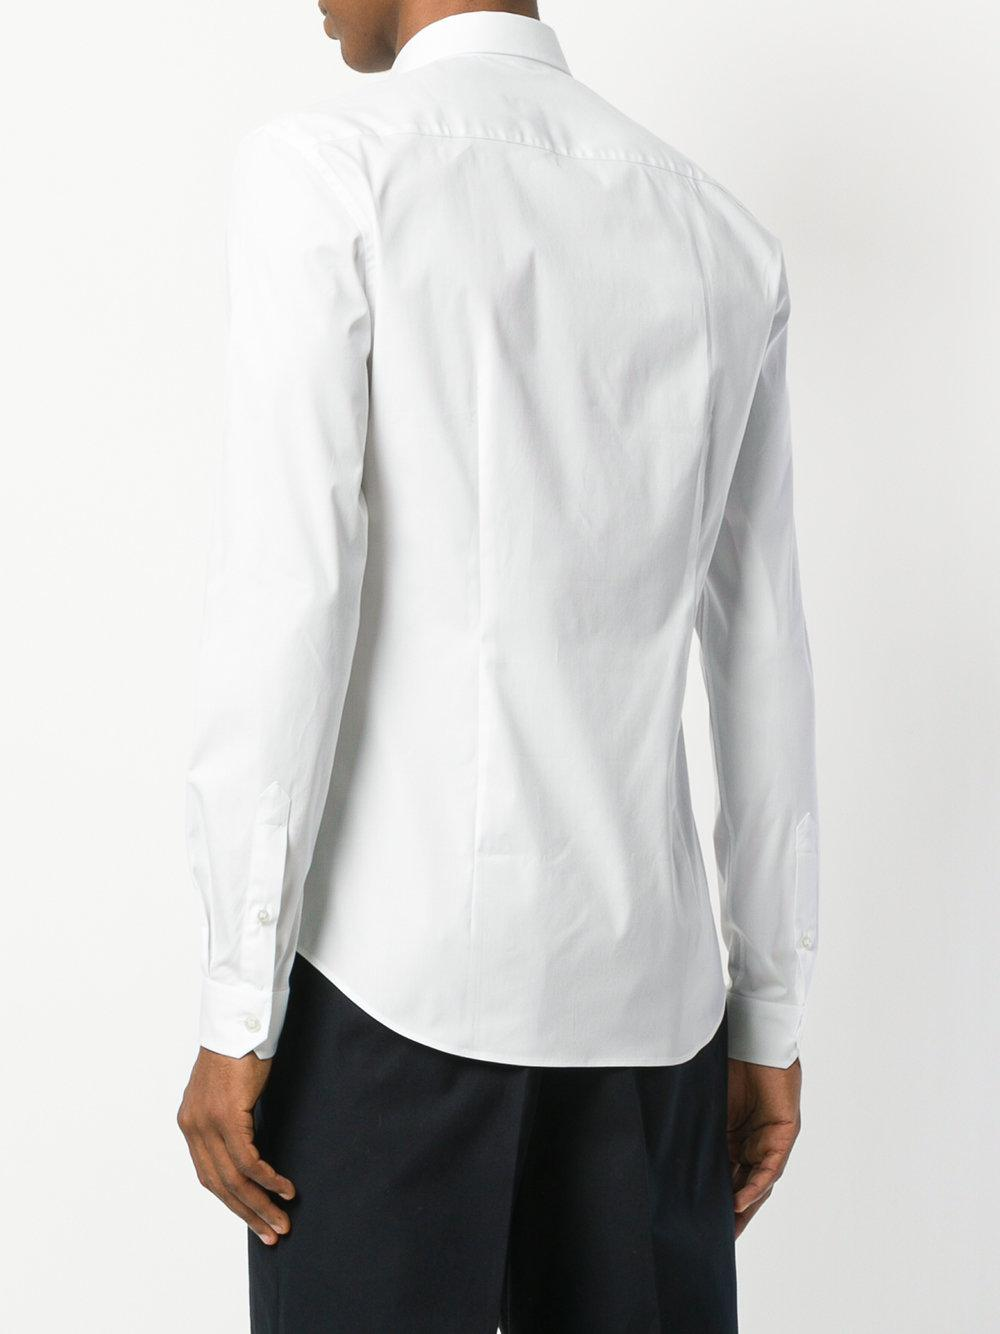 Versace Synthetic Classic Slim Shirt in White for Men